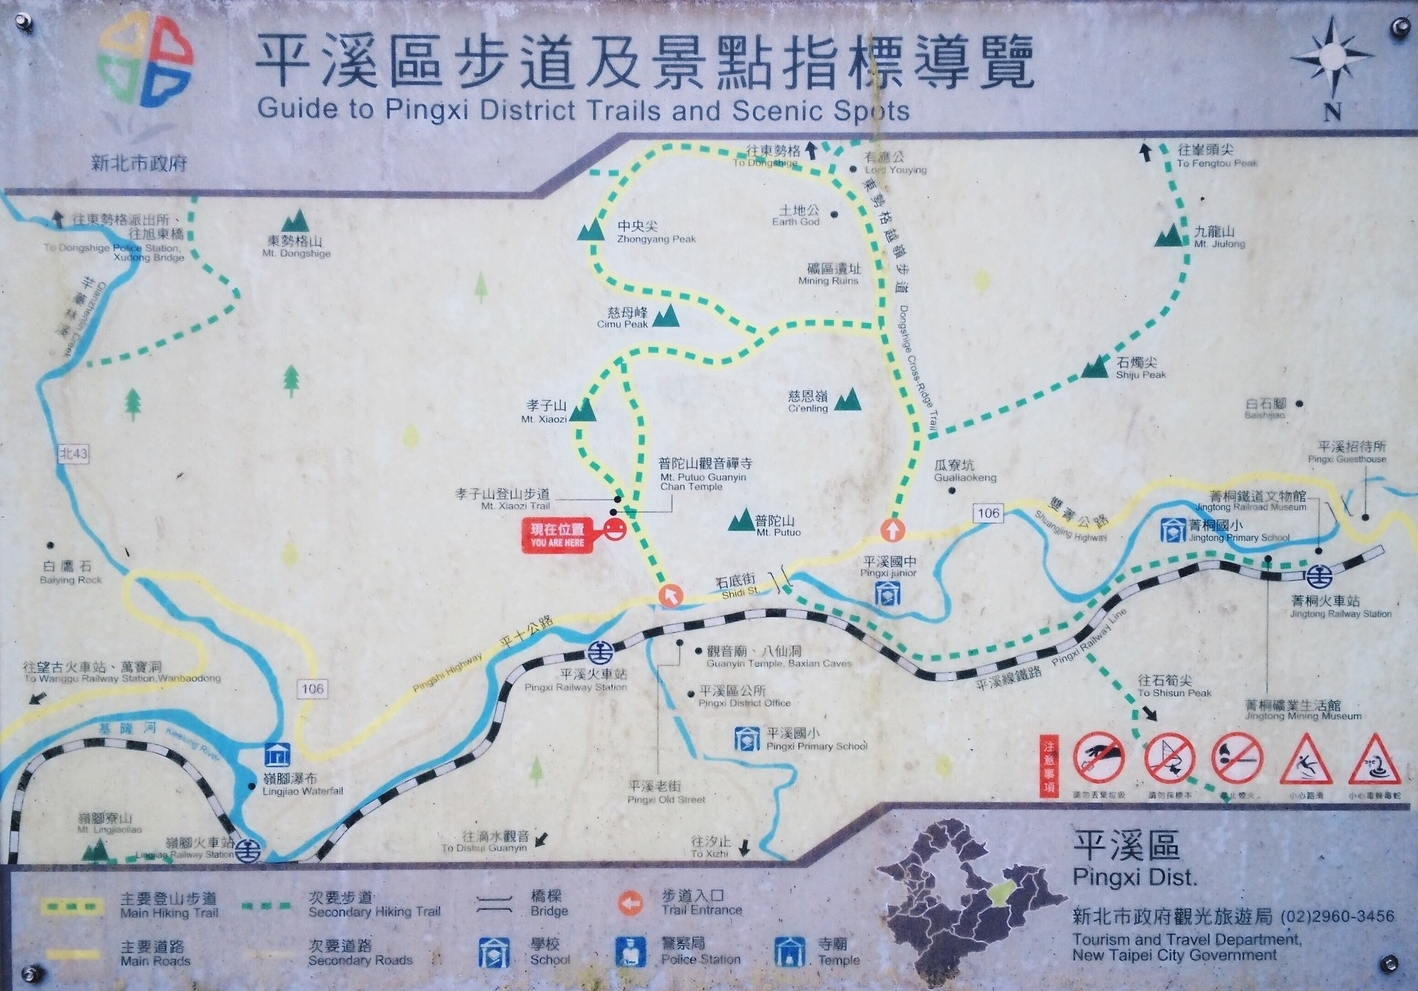 The Pingxi District Trail Map